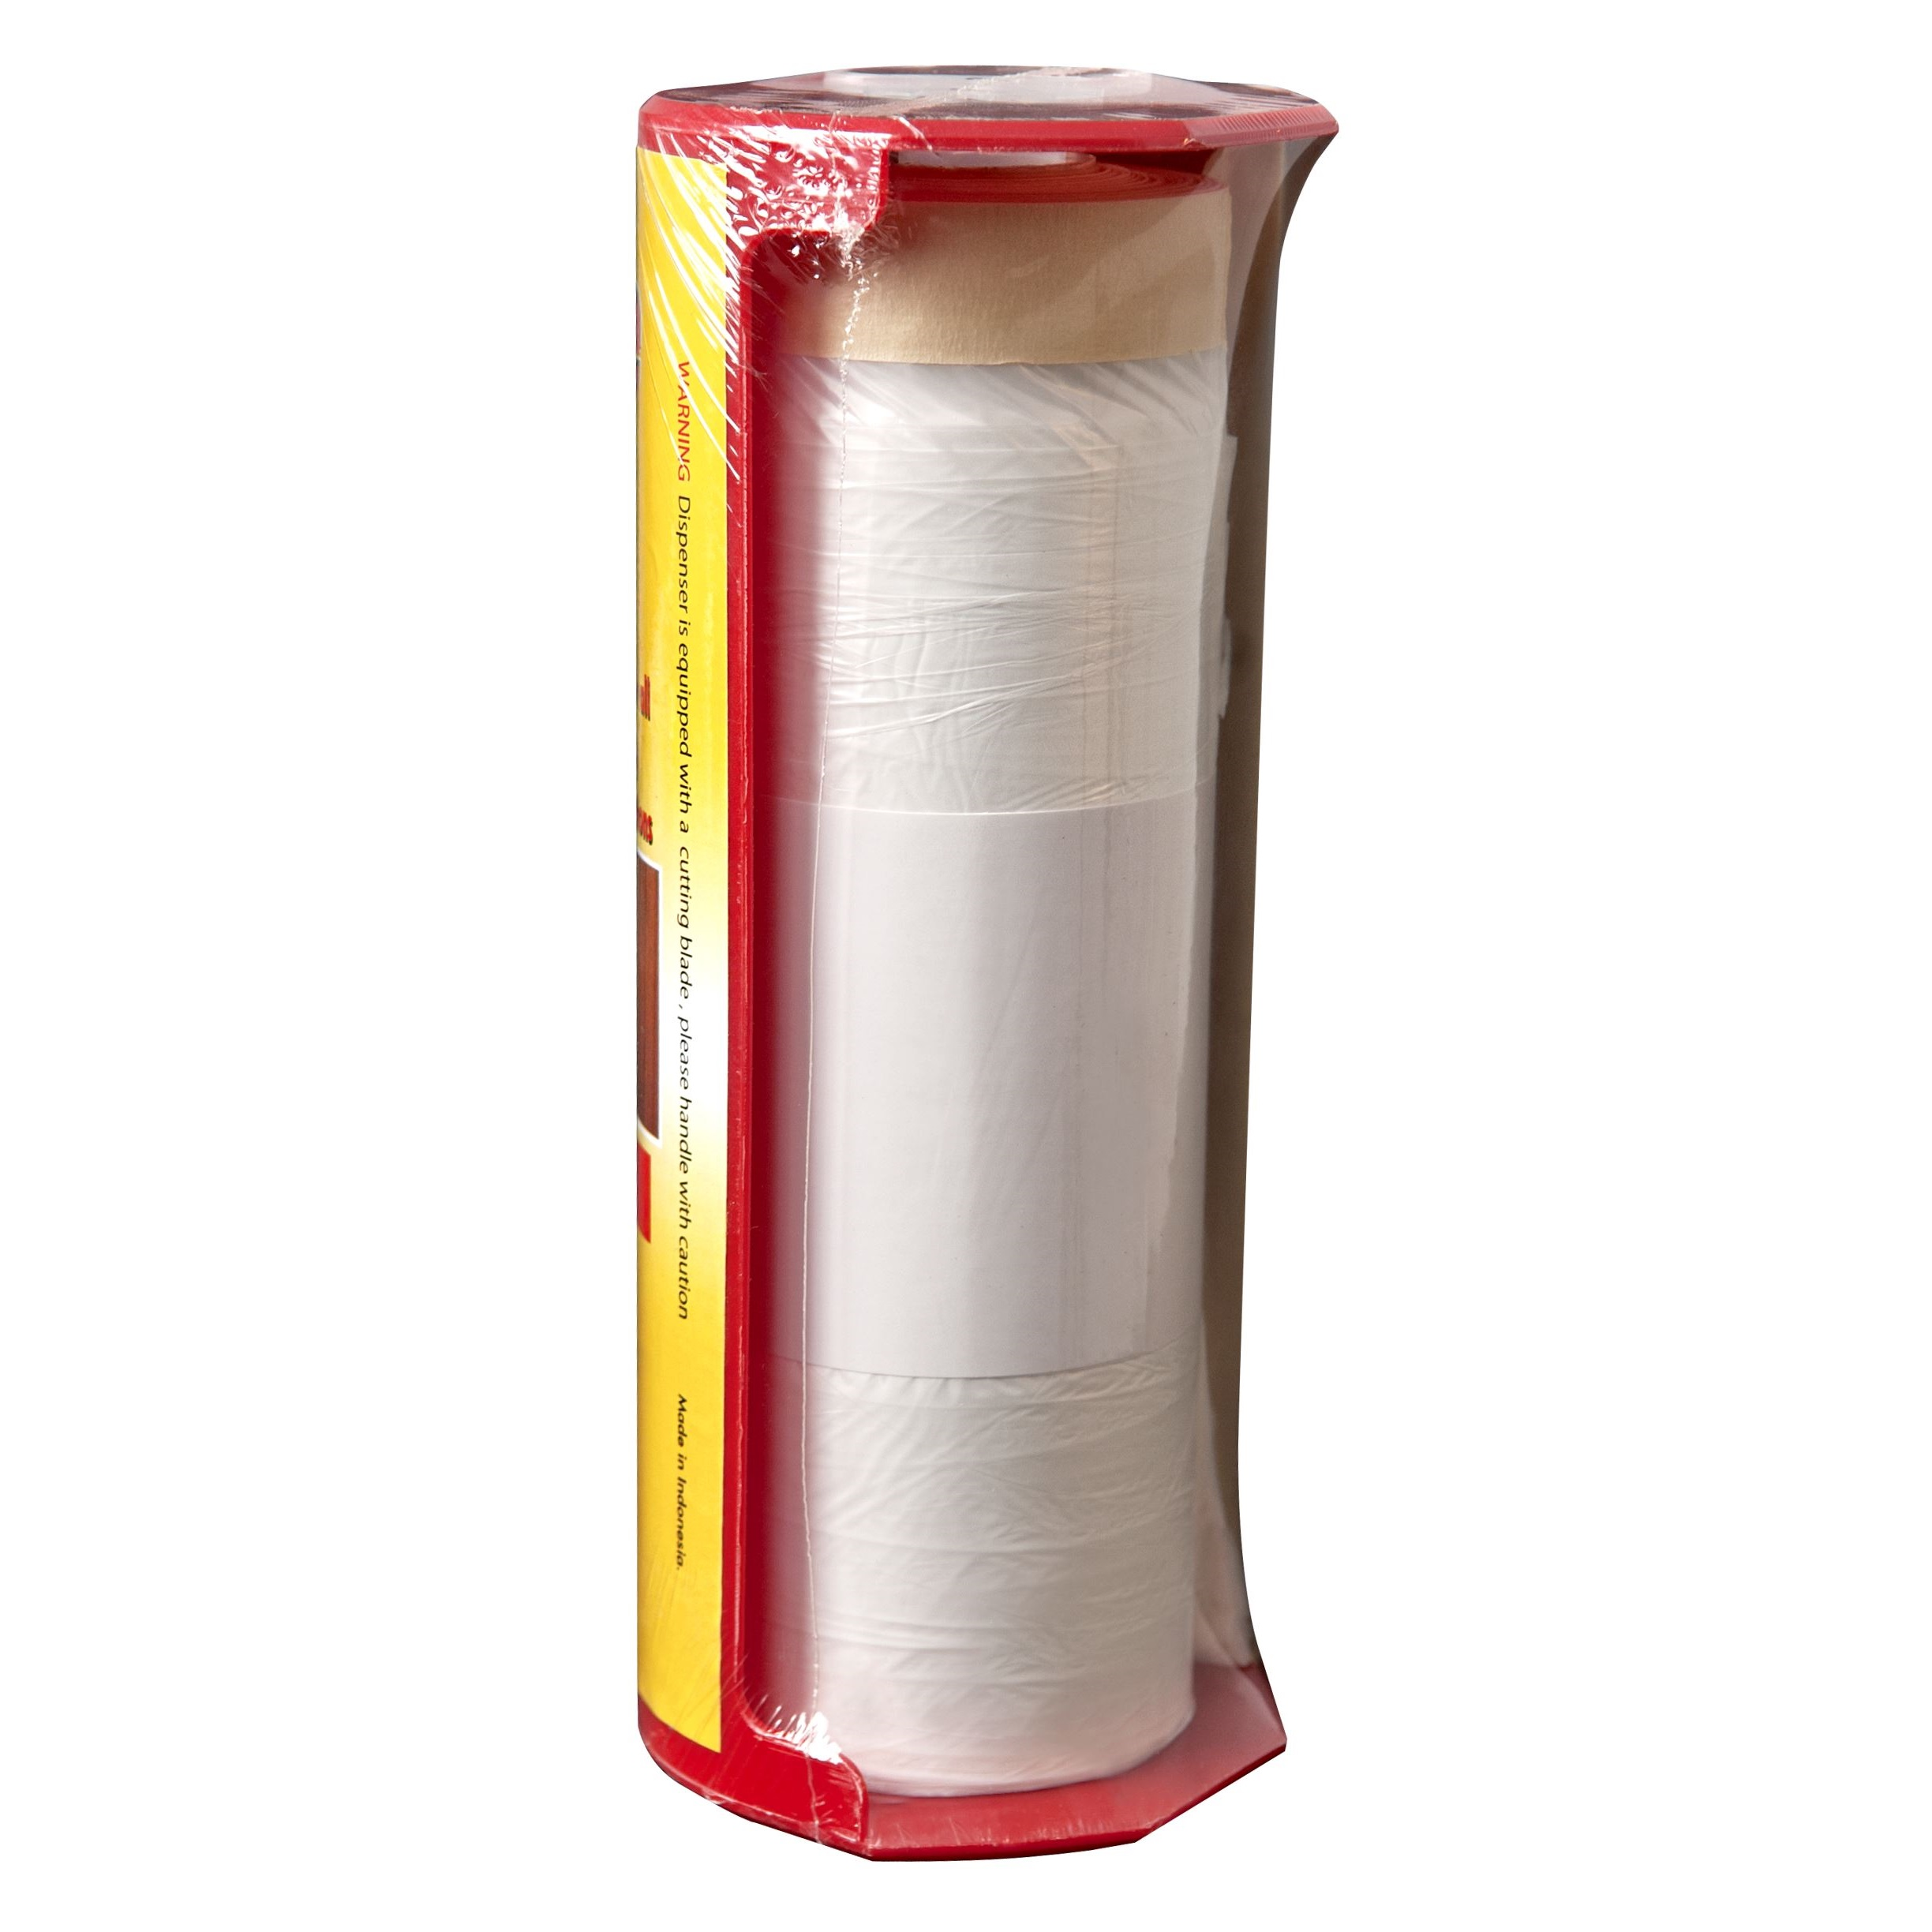 Translucent Masking Film Dispenser Roll